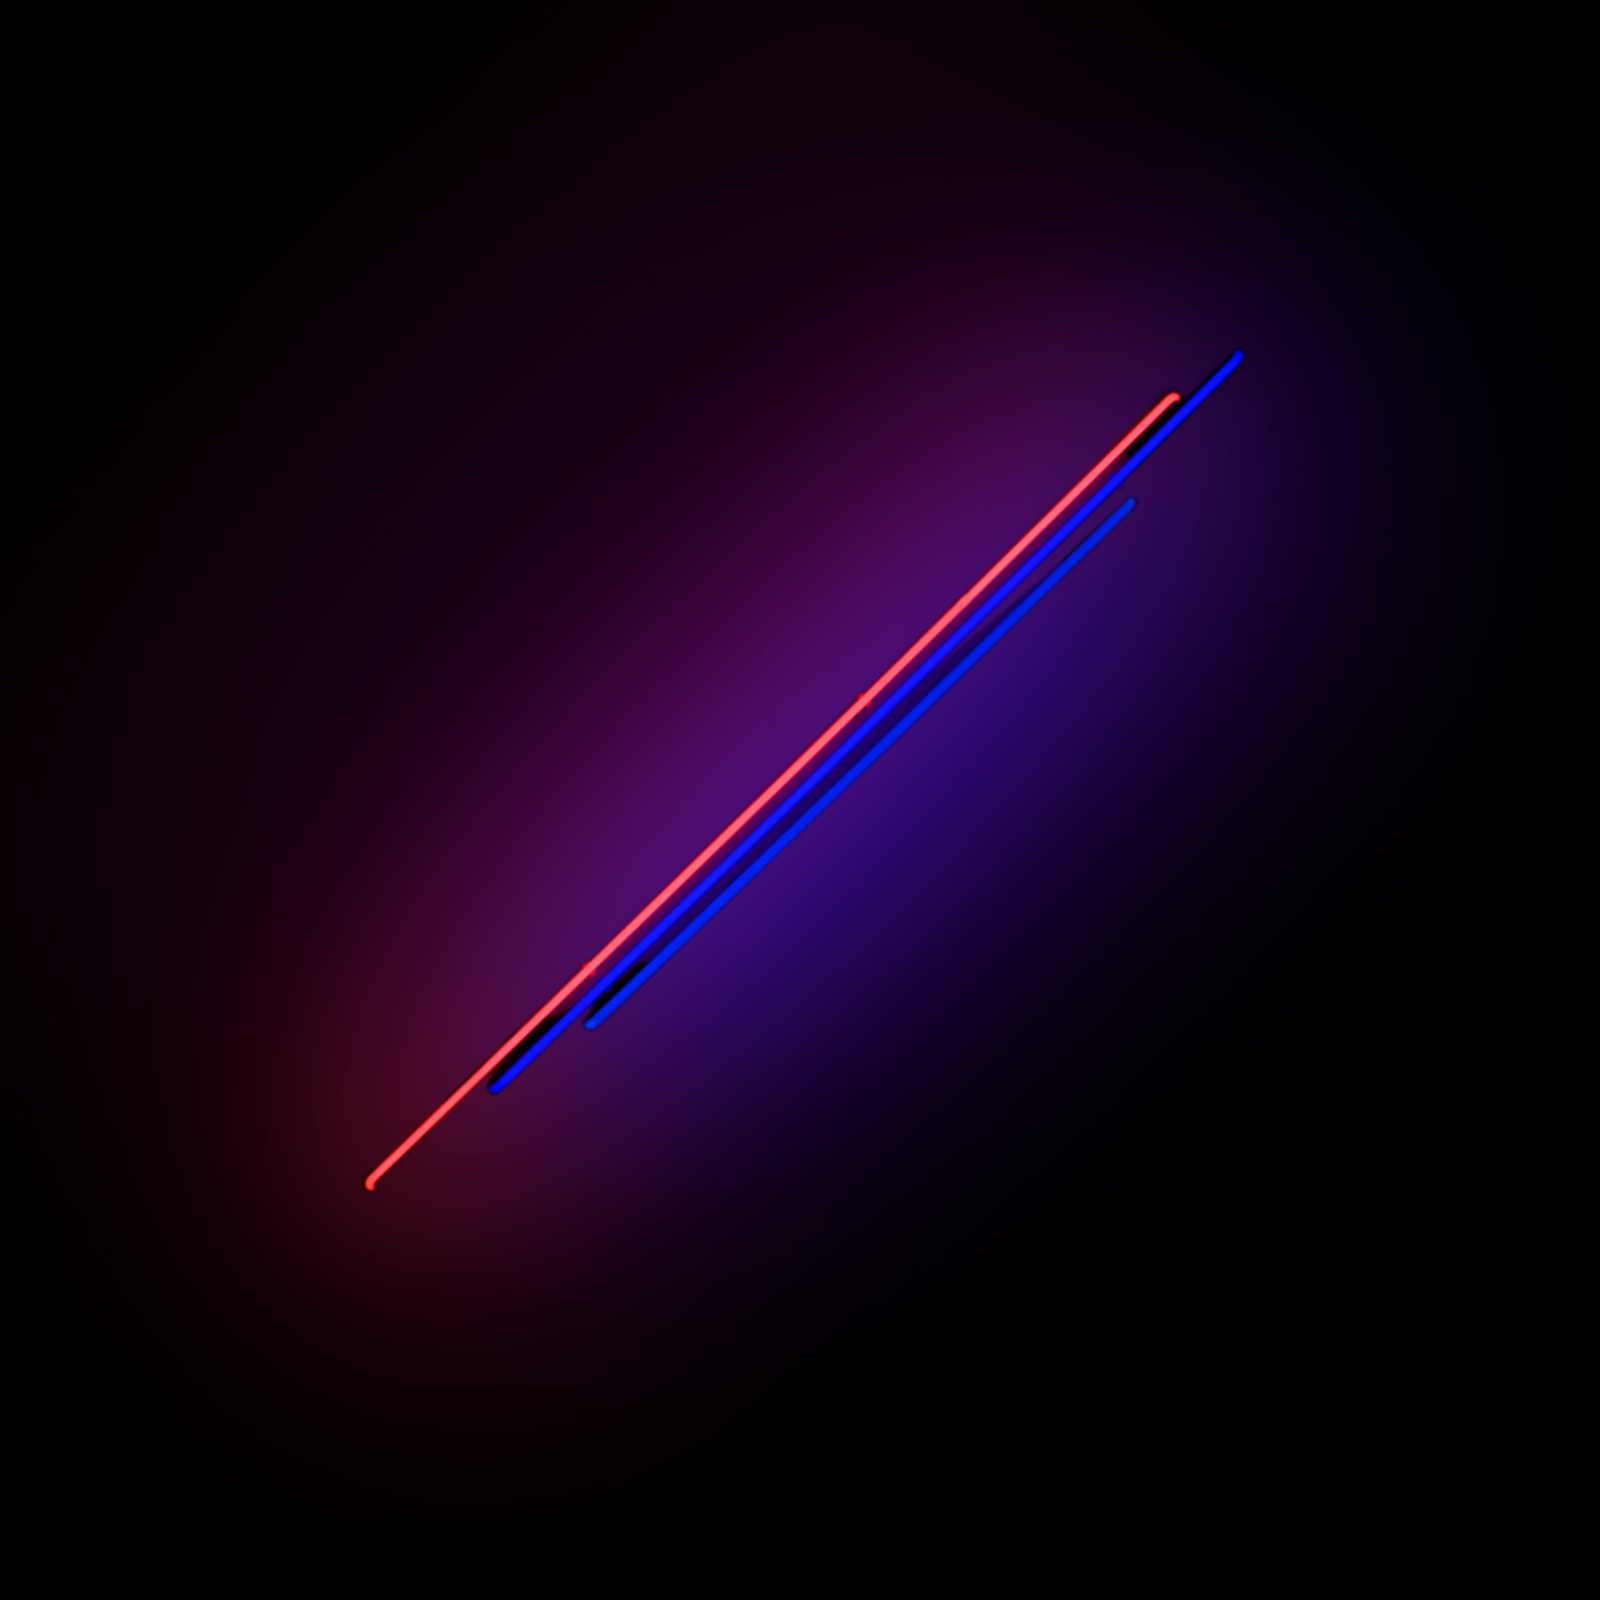 Anne Katrine Senstad  Ascension/Descension Graph 03, 2020  Neon (glass, wire, transformer)